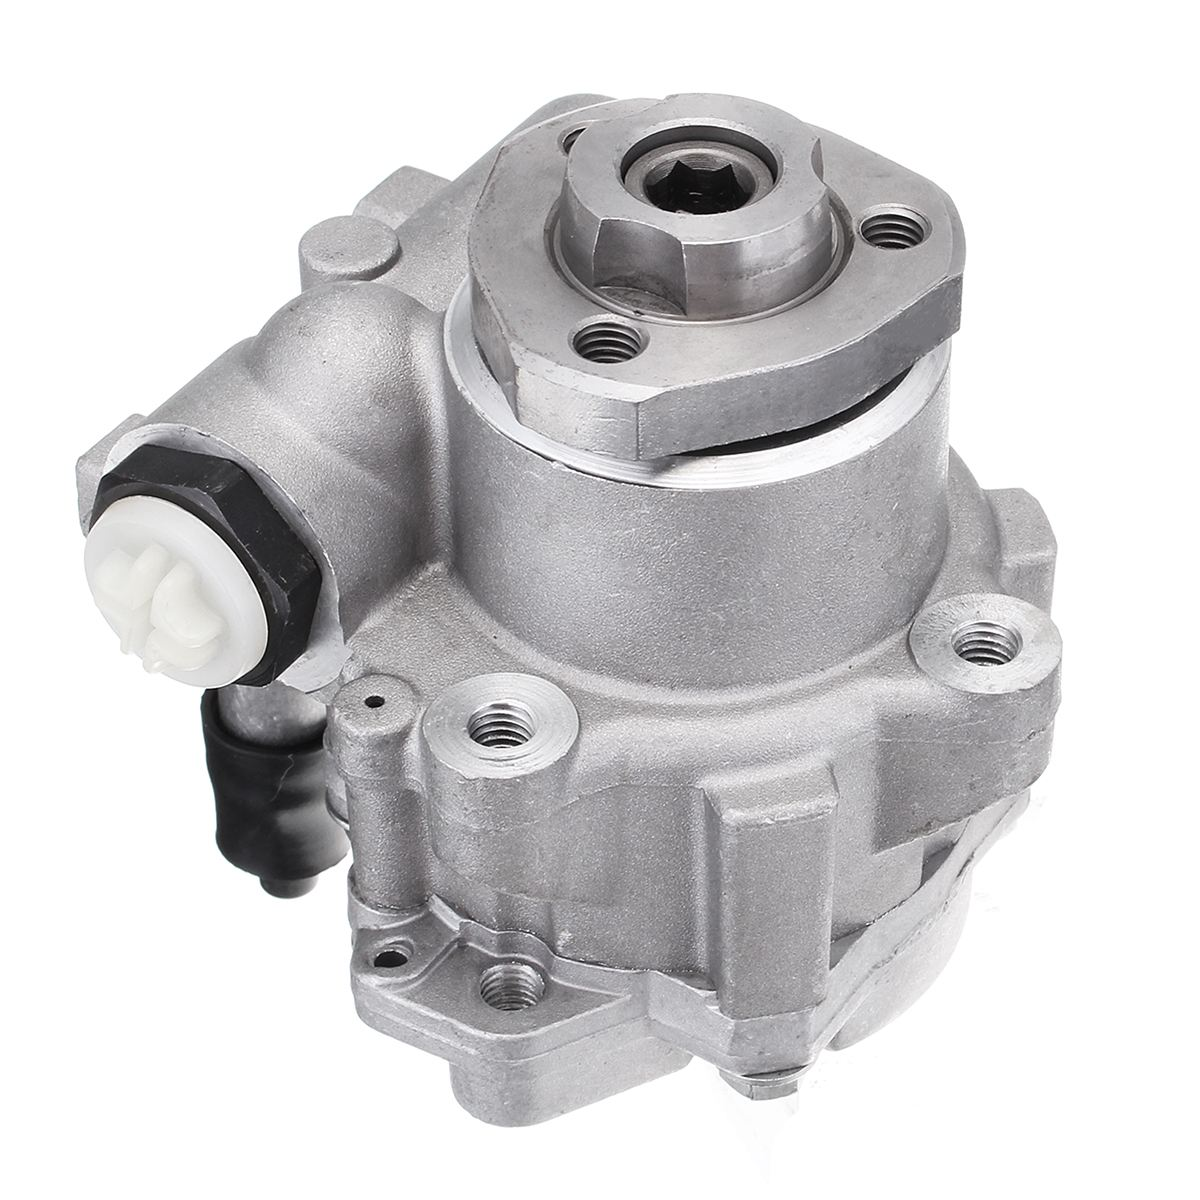 us $59 75 12% off power steering pump engine for bmw e46 3 series 325i 328i 32411094965 new in power steering pumps \u0026 parts from automobiles \u0026Location 2001 Bmw X5 Jeep Grand Wagoneer Power Steering Pump Bmw 325i #19